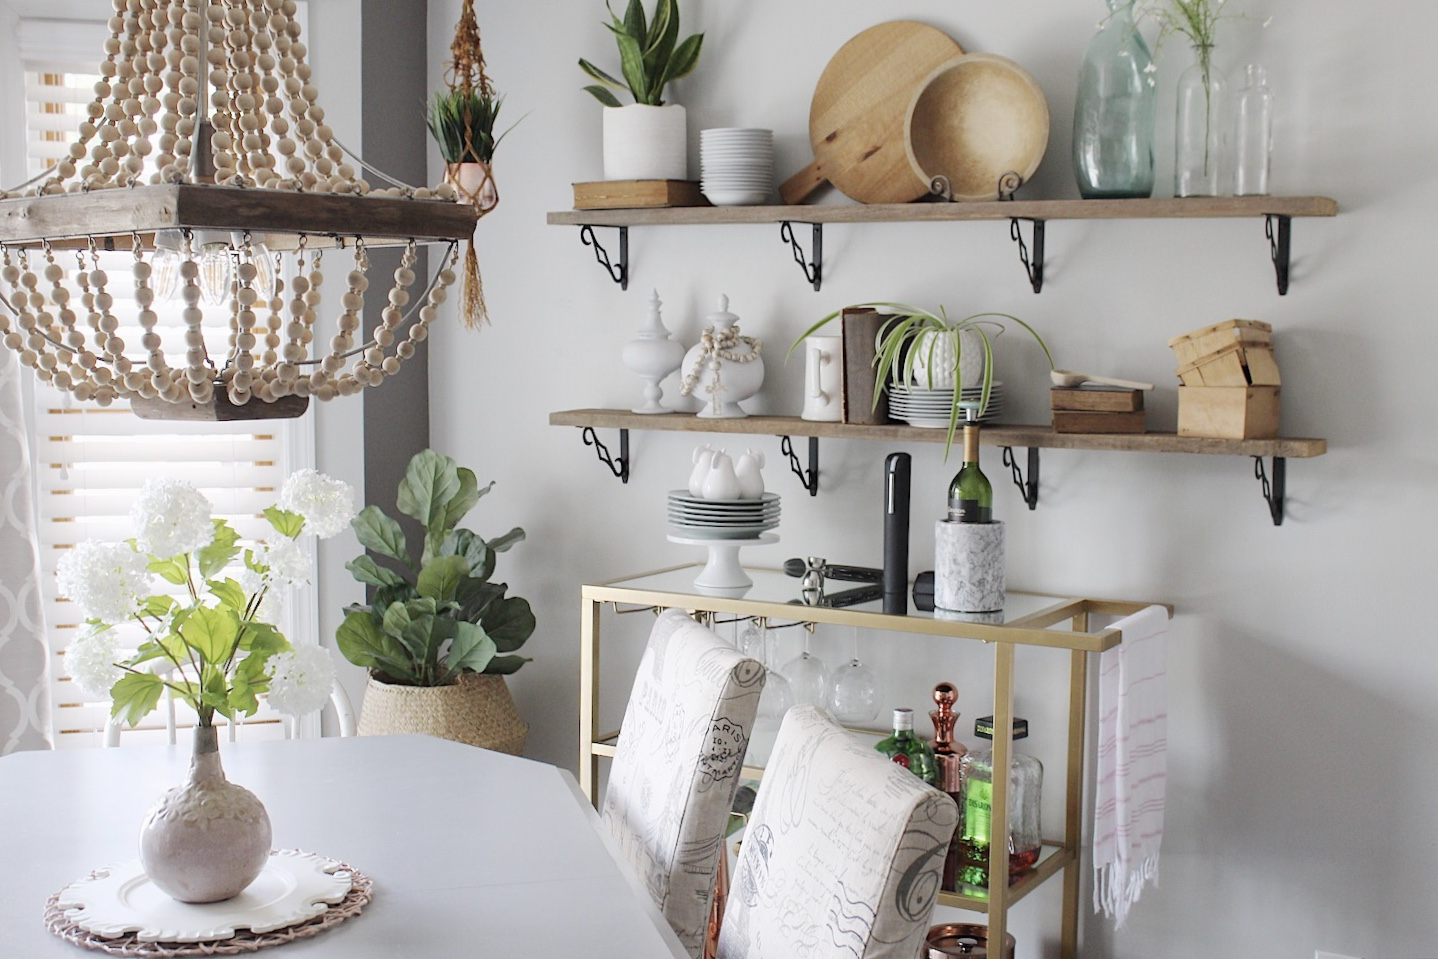 quick tips to styling your open shelves